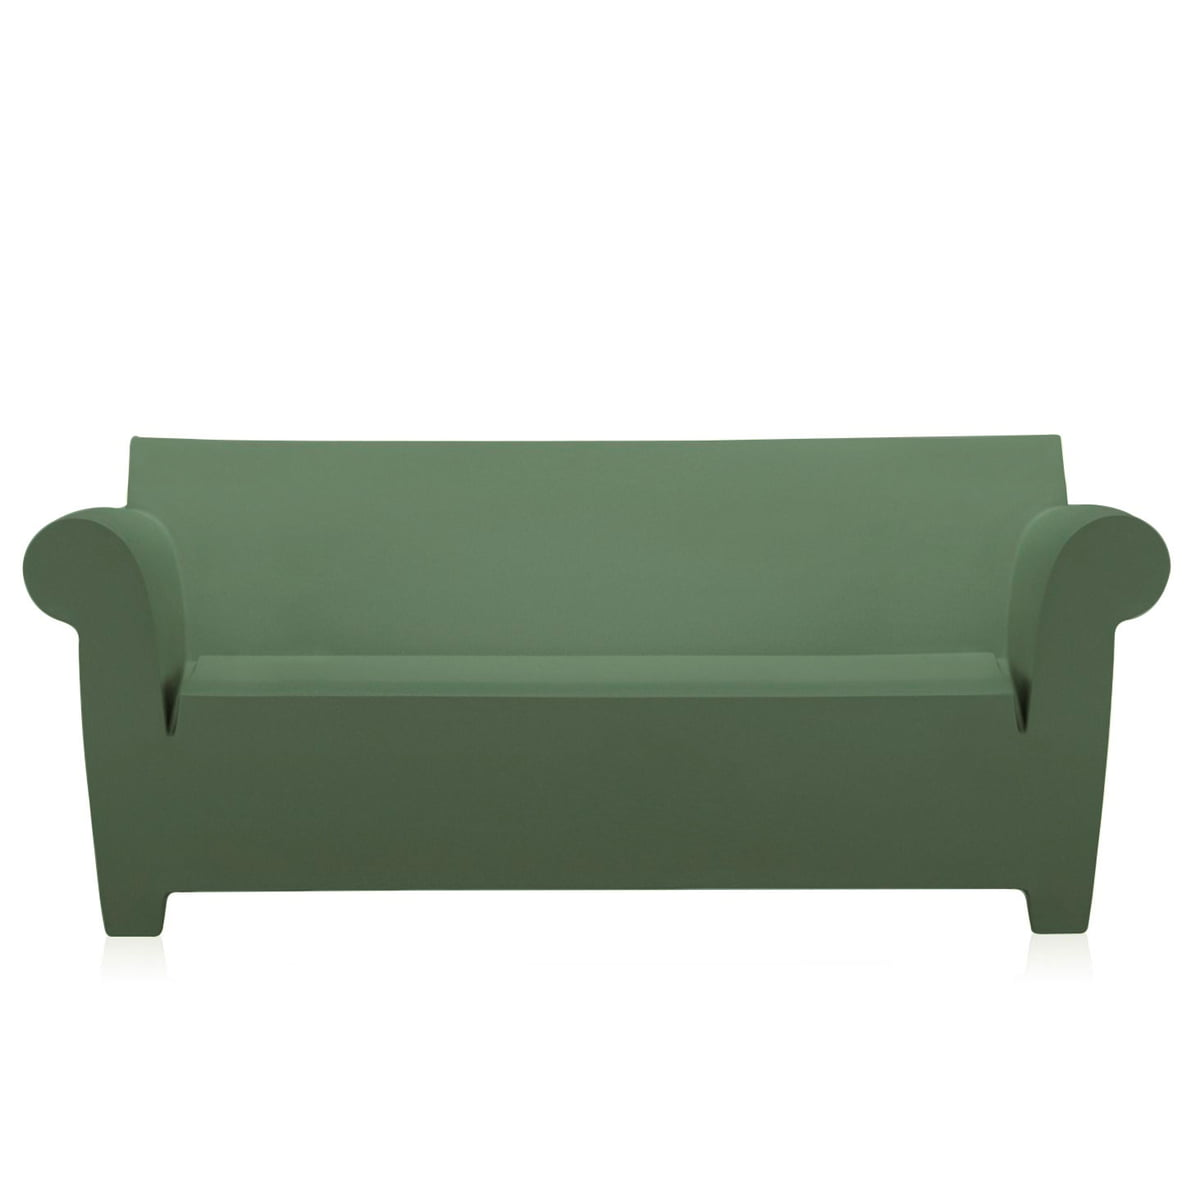 bubble club couch  kartell  shop - kartell  bubble club sofa green